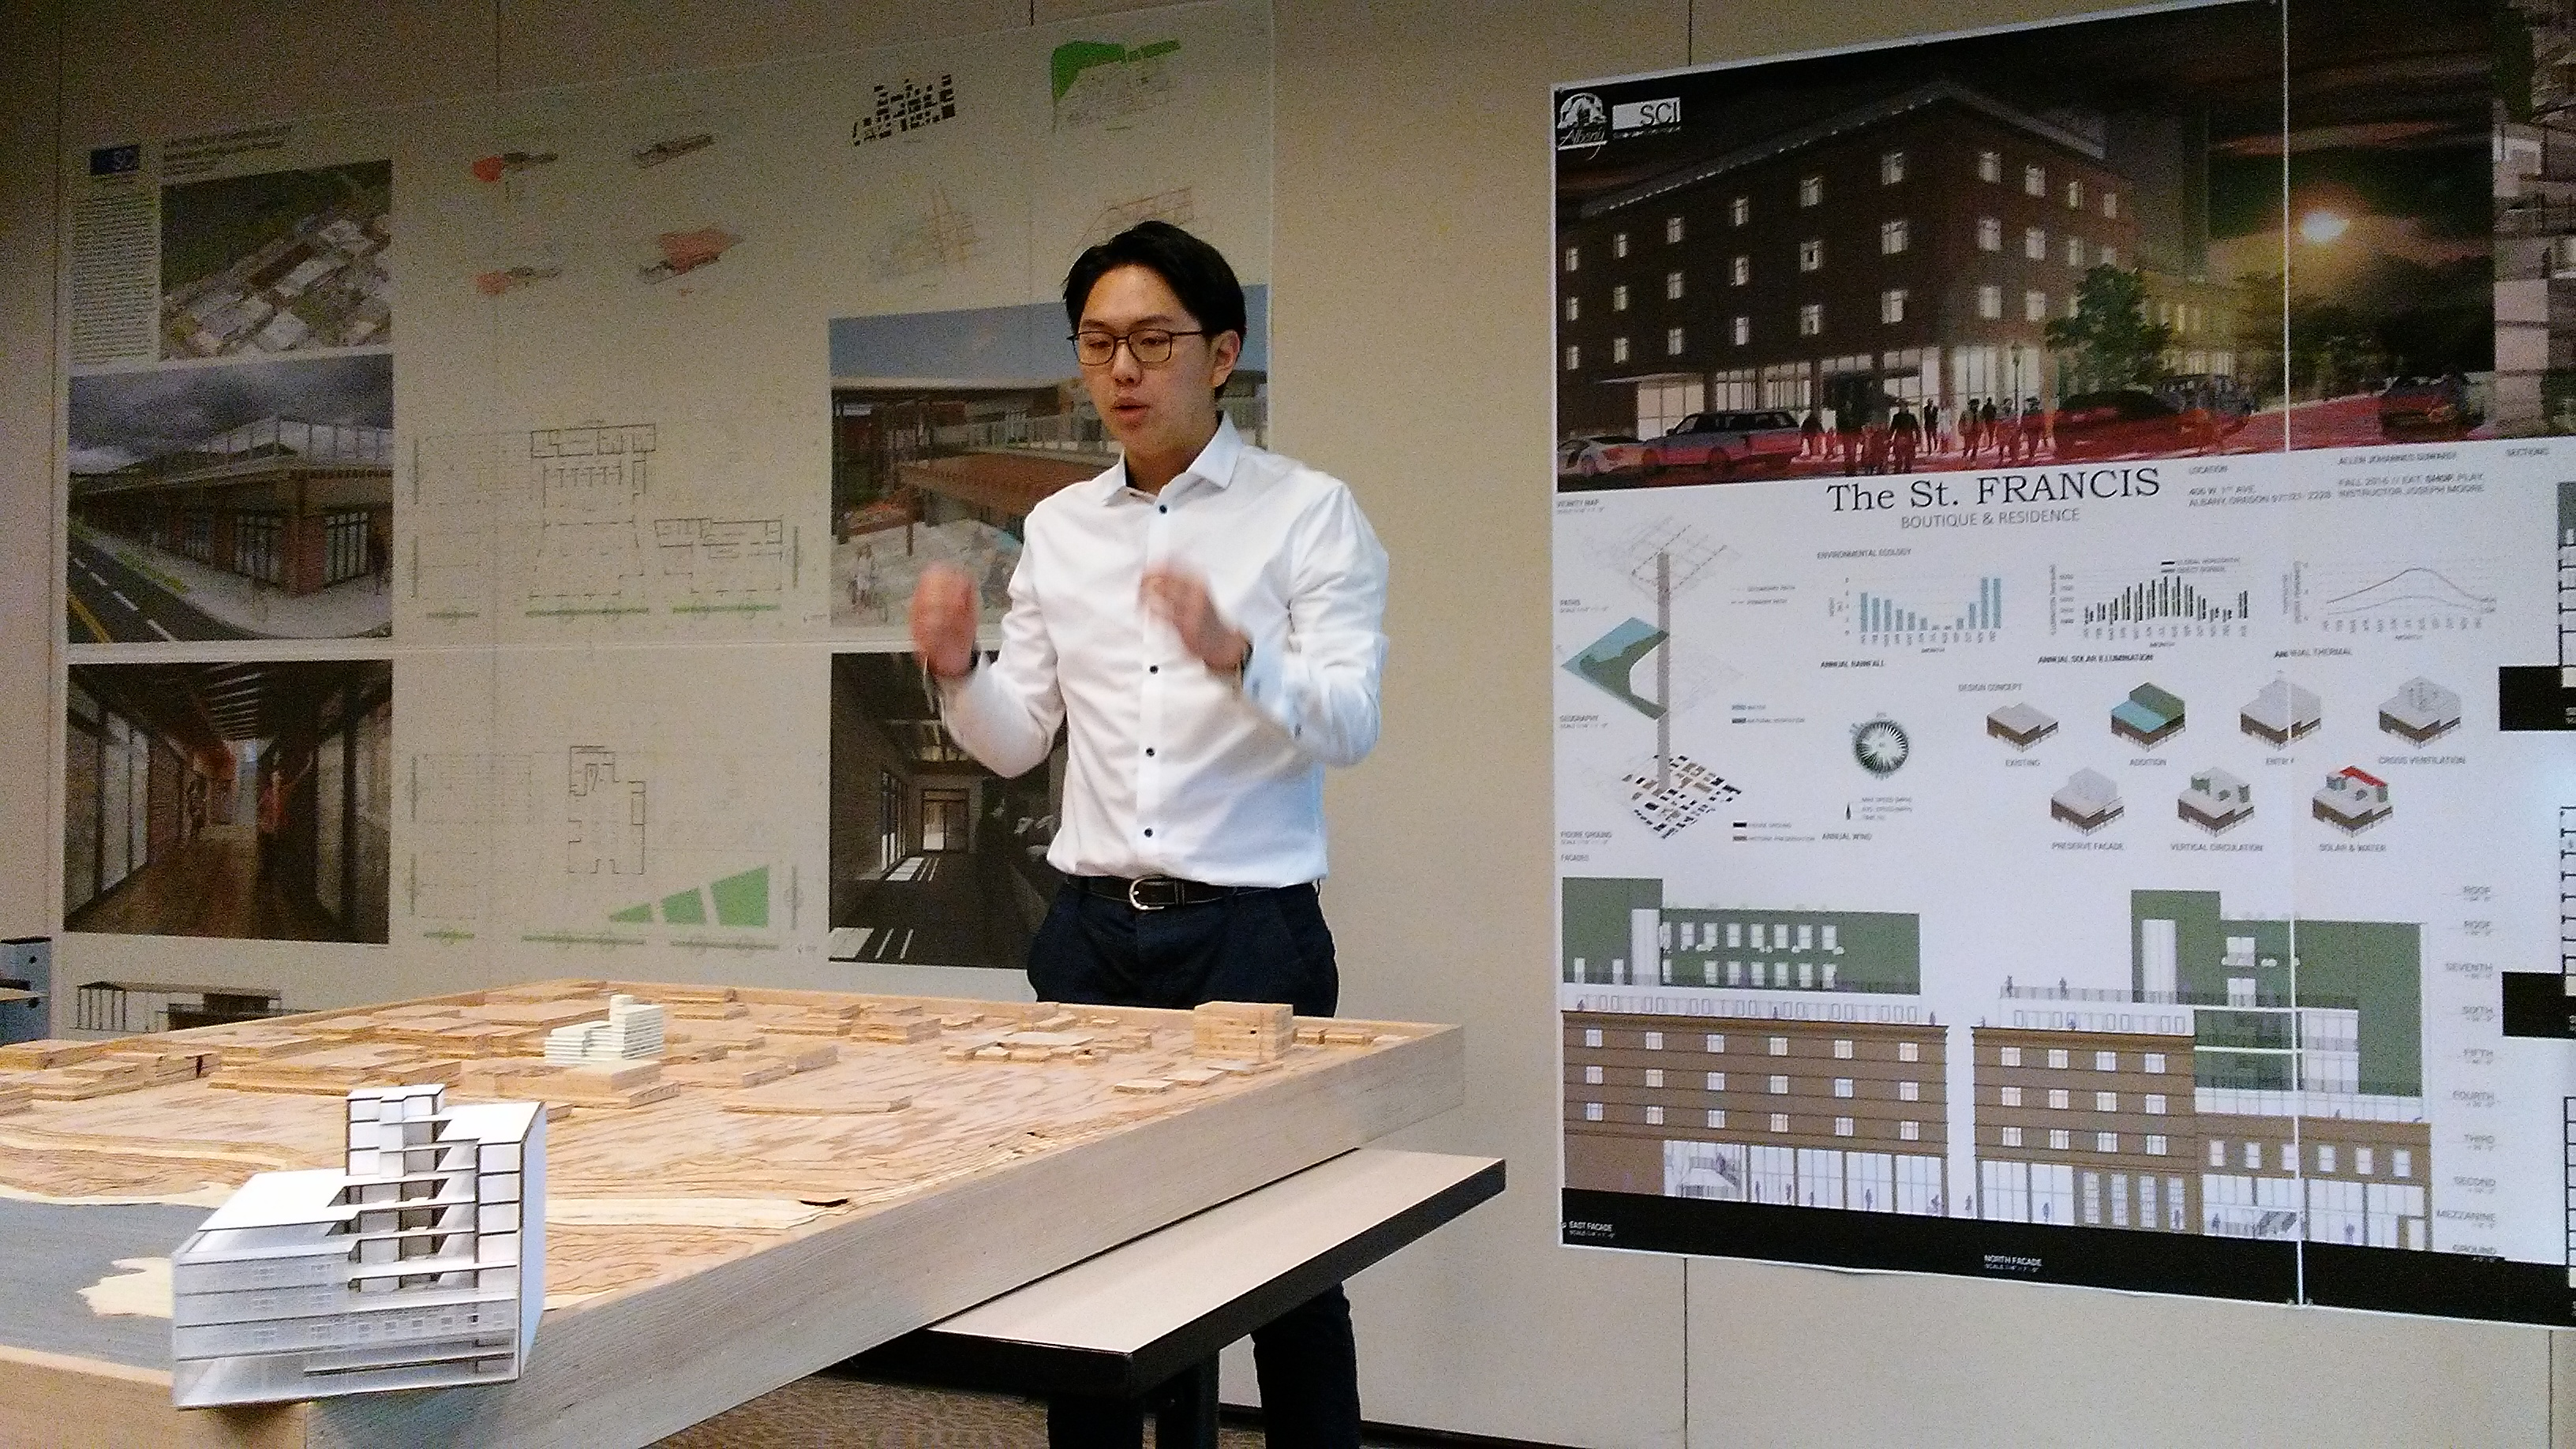 Allen Suwardi's St. Francis design in drawings and two models, one on its site in a plywood mockup of donwtown, the other in the foreground..